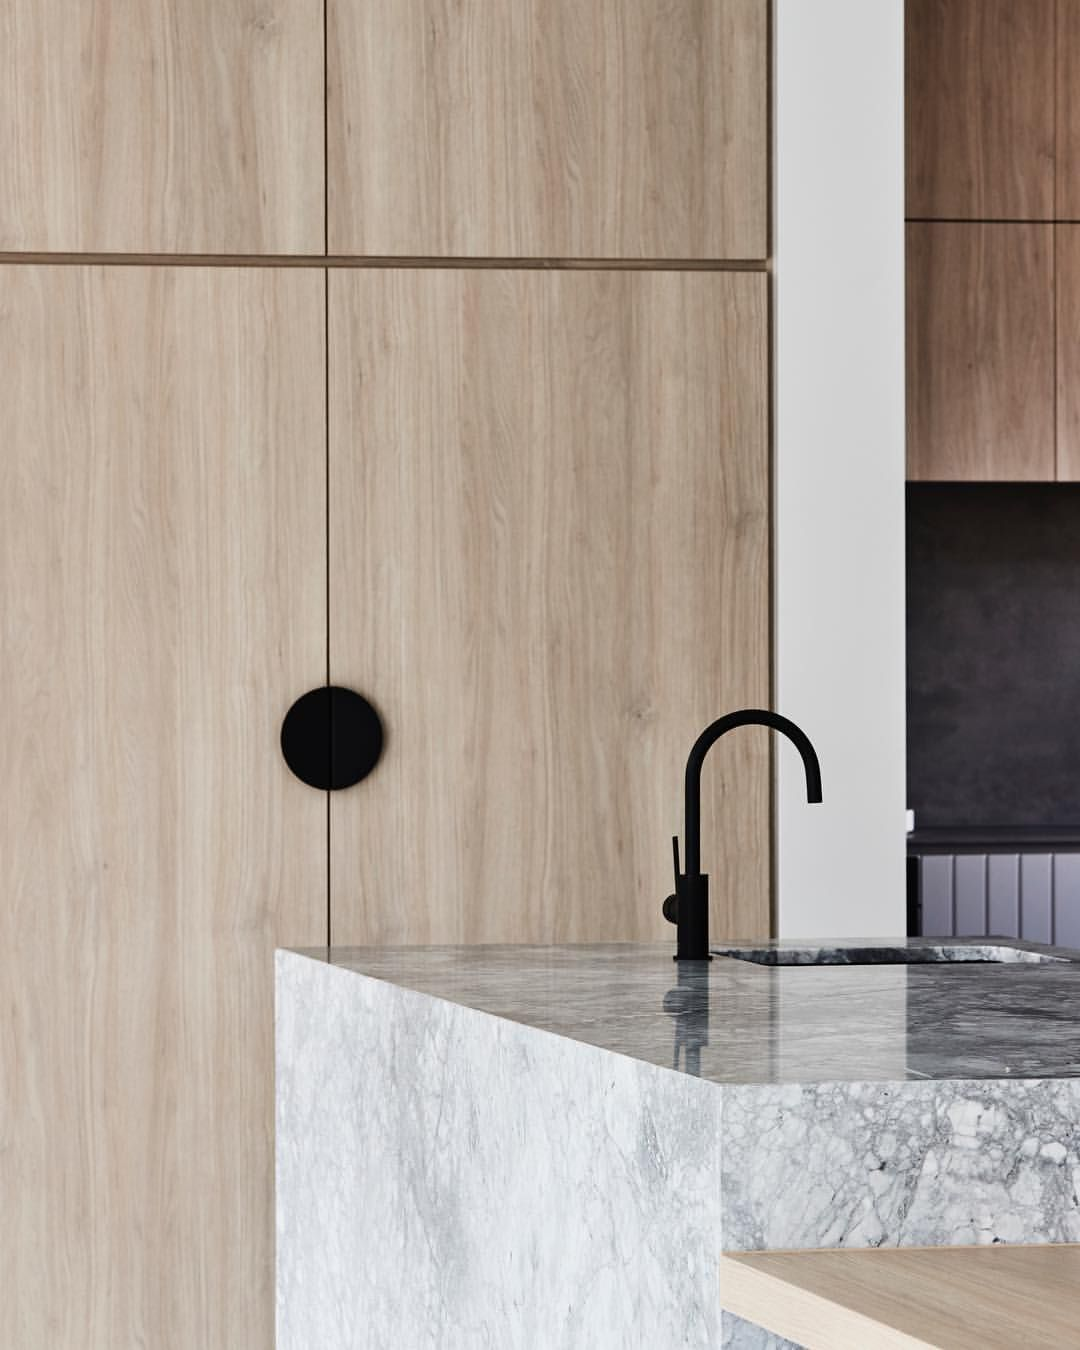 Luxury Kitchen Interior Design: Pin By Jenna Rowe On Architecture